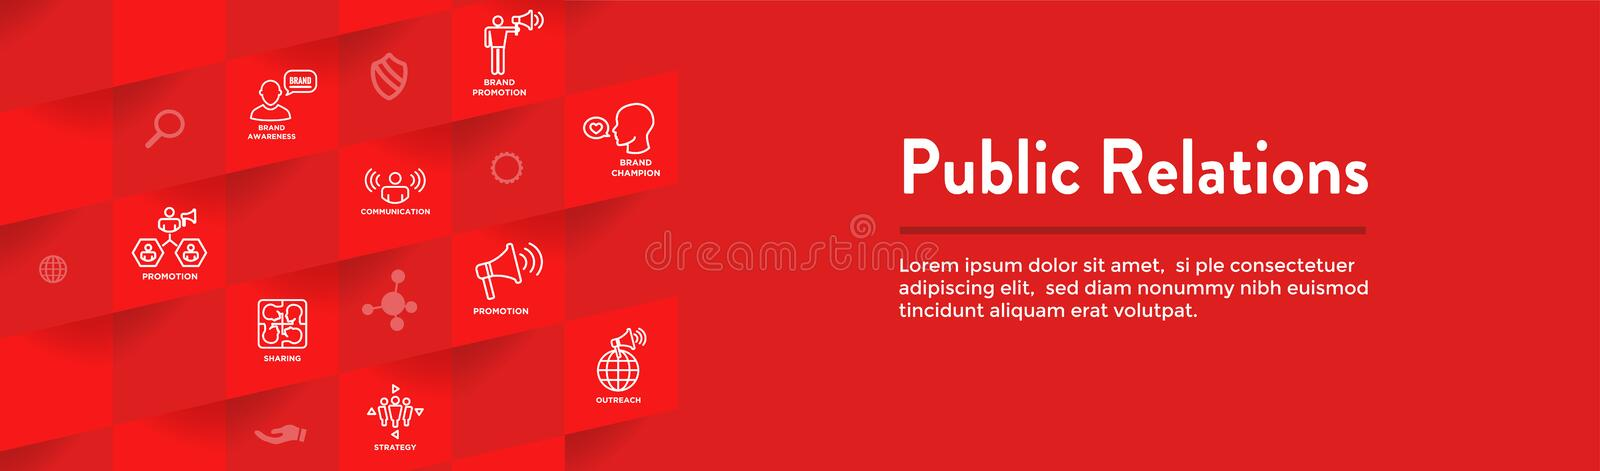 Public Relations Web Header Banner and Icon Set with brand awareness, strategy, and promotion. Public Relations Web Header Banner & Icon Set with brand awareness stock illustration